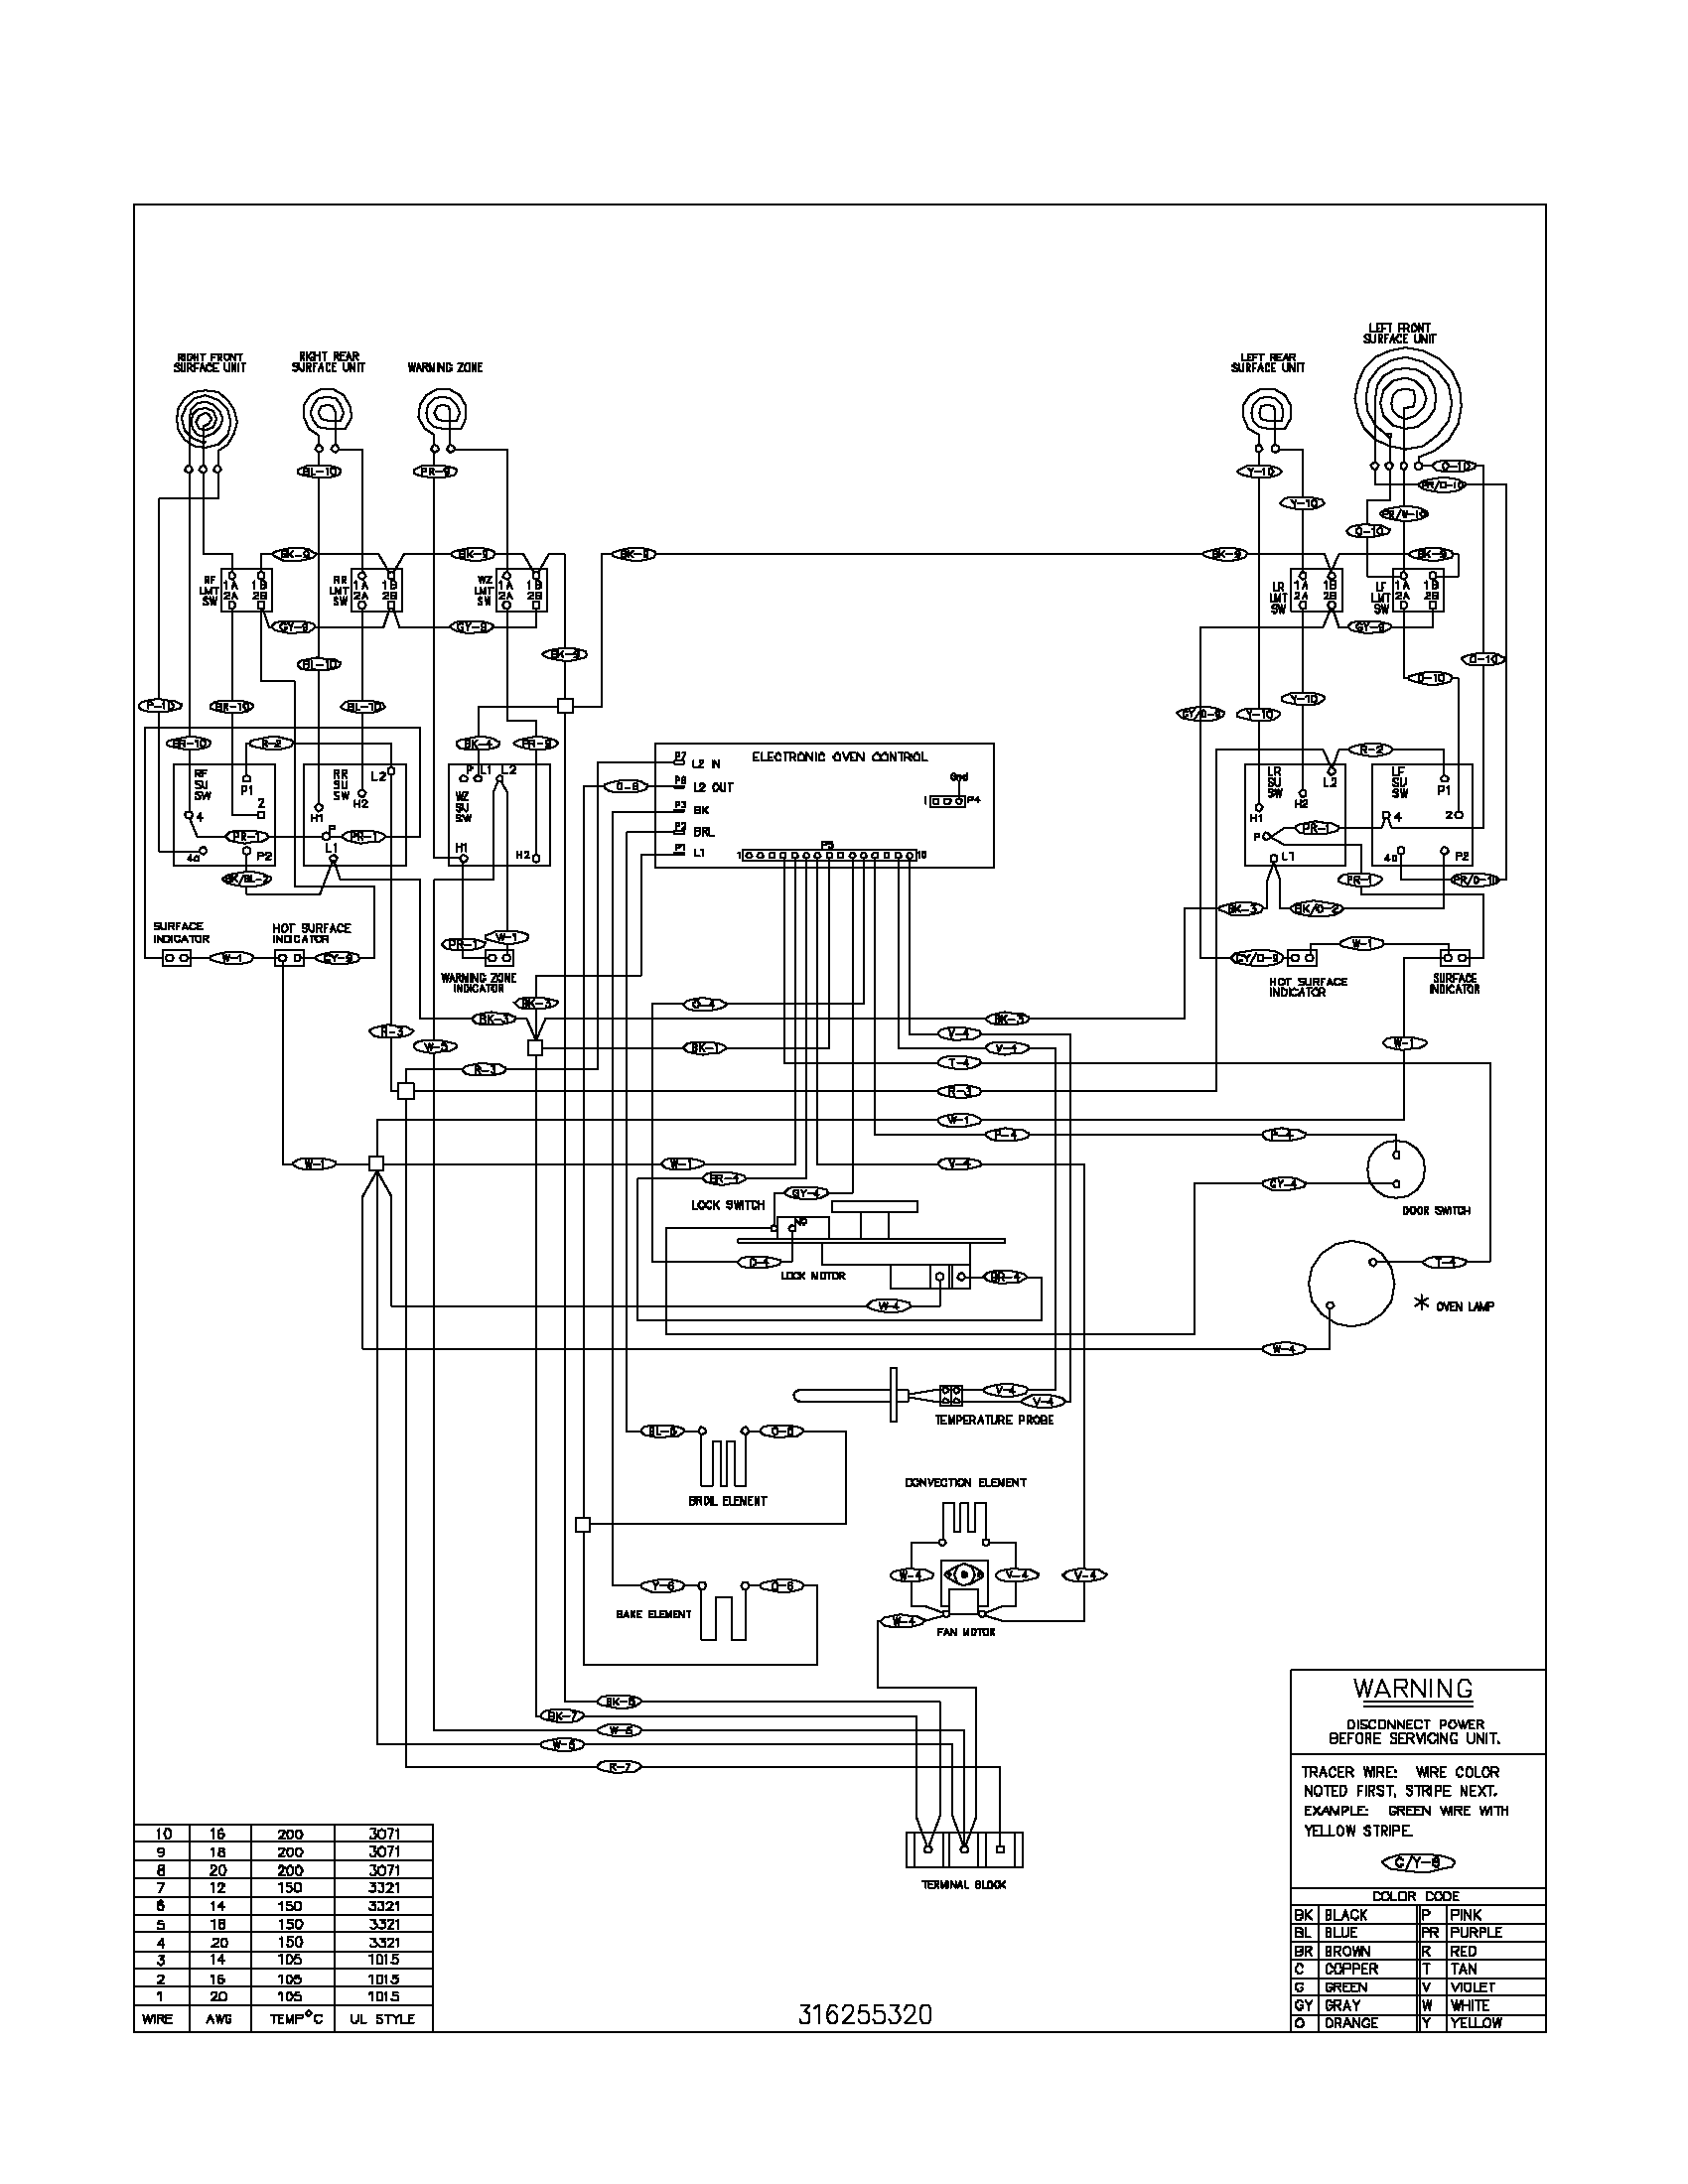 wiring diagram parts whirlpool 6wri24wk electrical circuit diagram refrigerator samsung refrigerator wiring diagram at soozxer.org